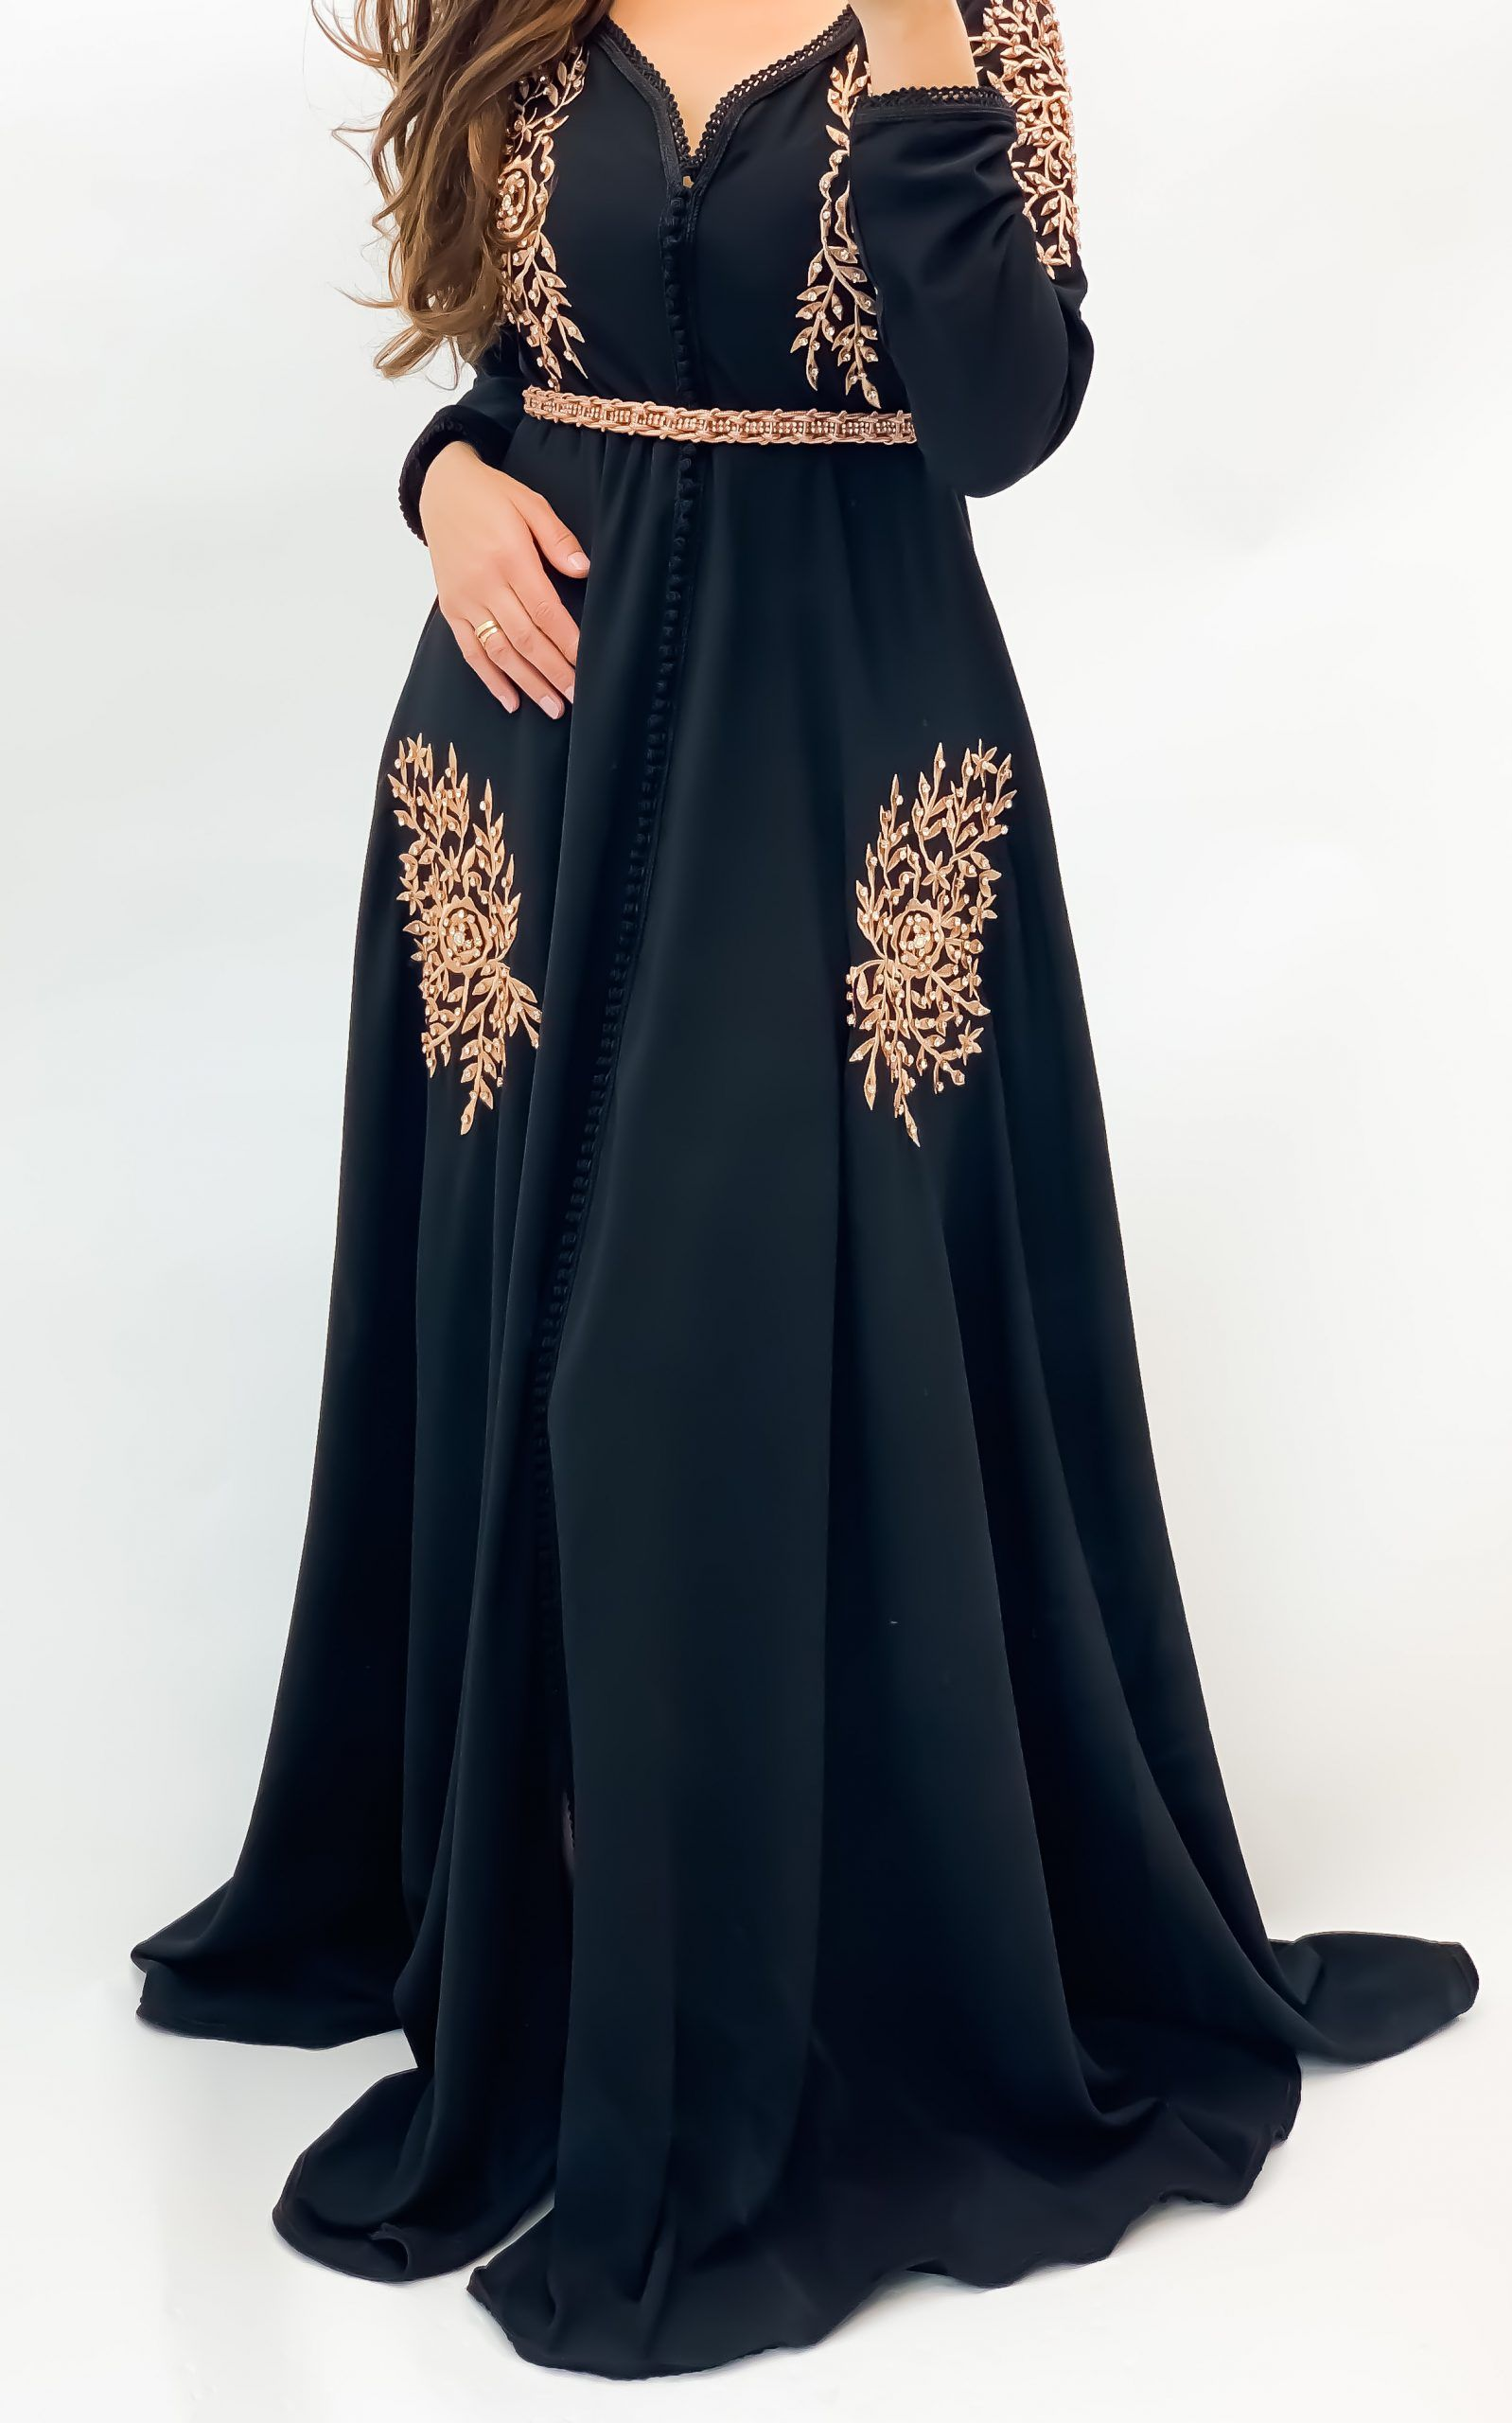 Arabic Dress A Heart For Maroccan Fashion Arabicdress Eu Moroccan Dress Evening Dress Fashion Stylish Dresses For Girls